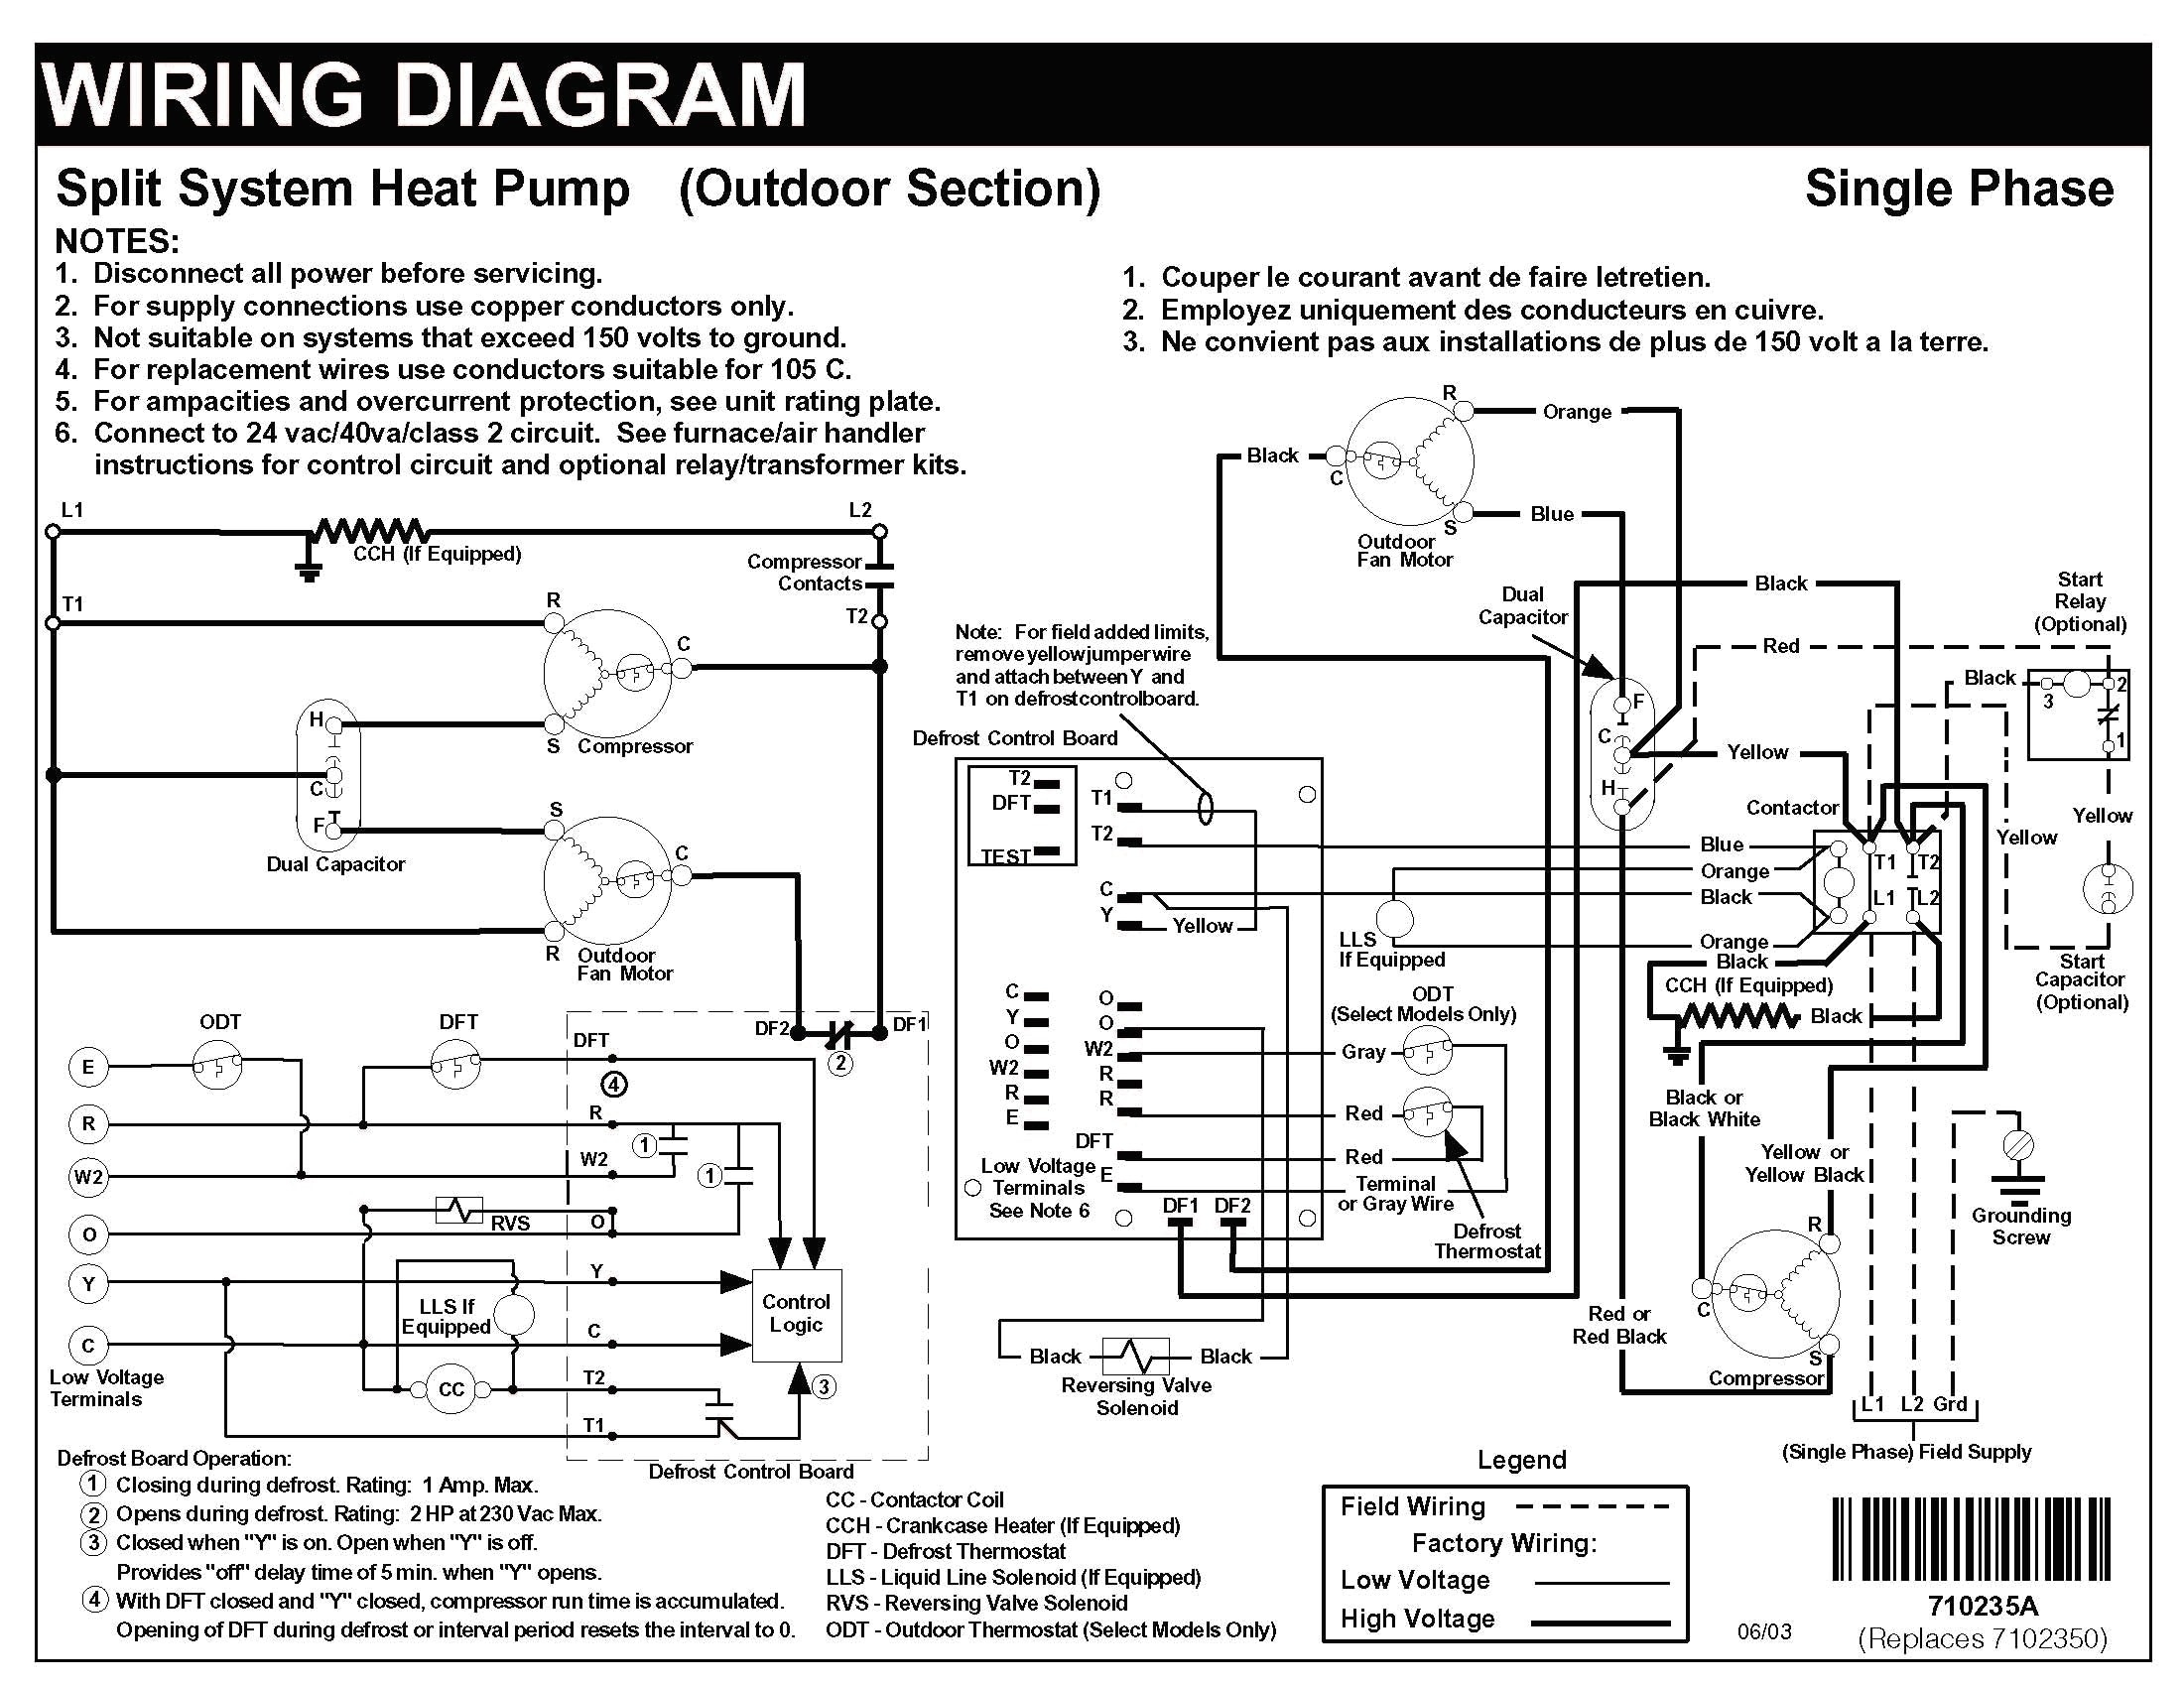 pool heat pump wiring diagram Download-Nest Thermostat Wiring Diagram Heat Pump Elegant Famous Carrier Heat Pump Wiring Diagram Gallery Electrical Nest Thermostat Wiring Diagram Heat Pump In 11-l